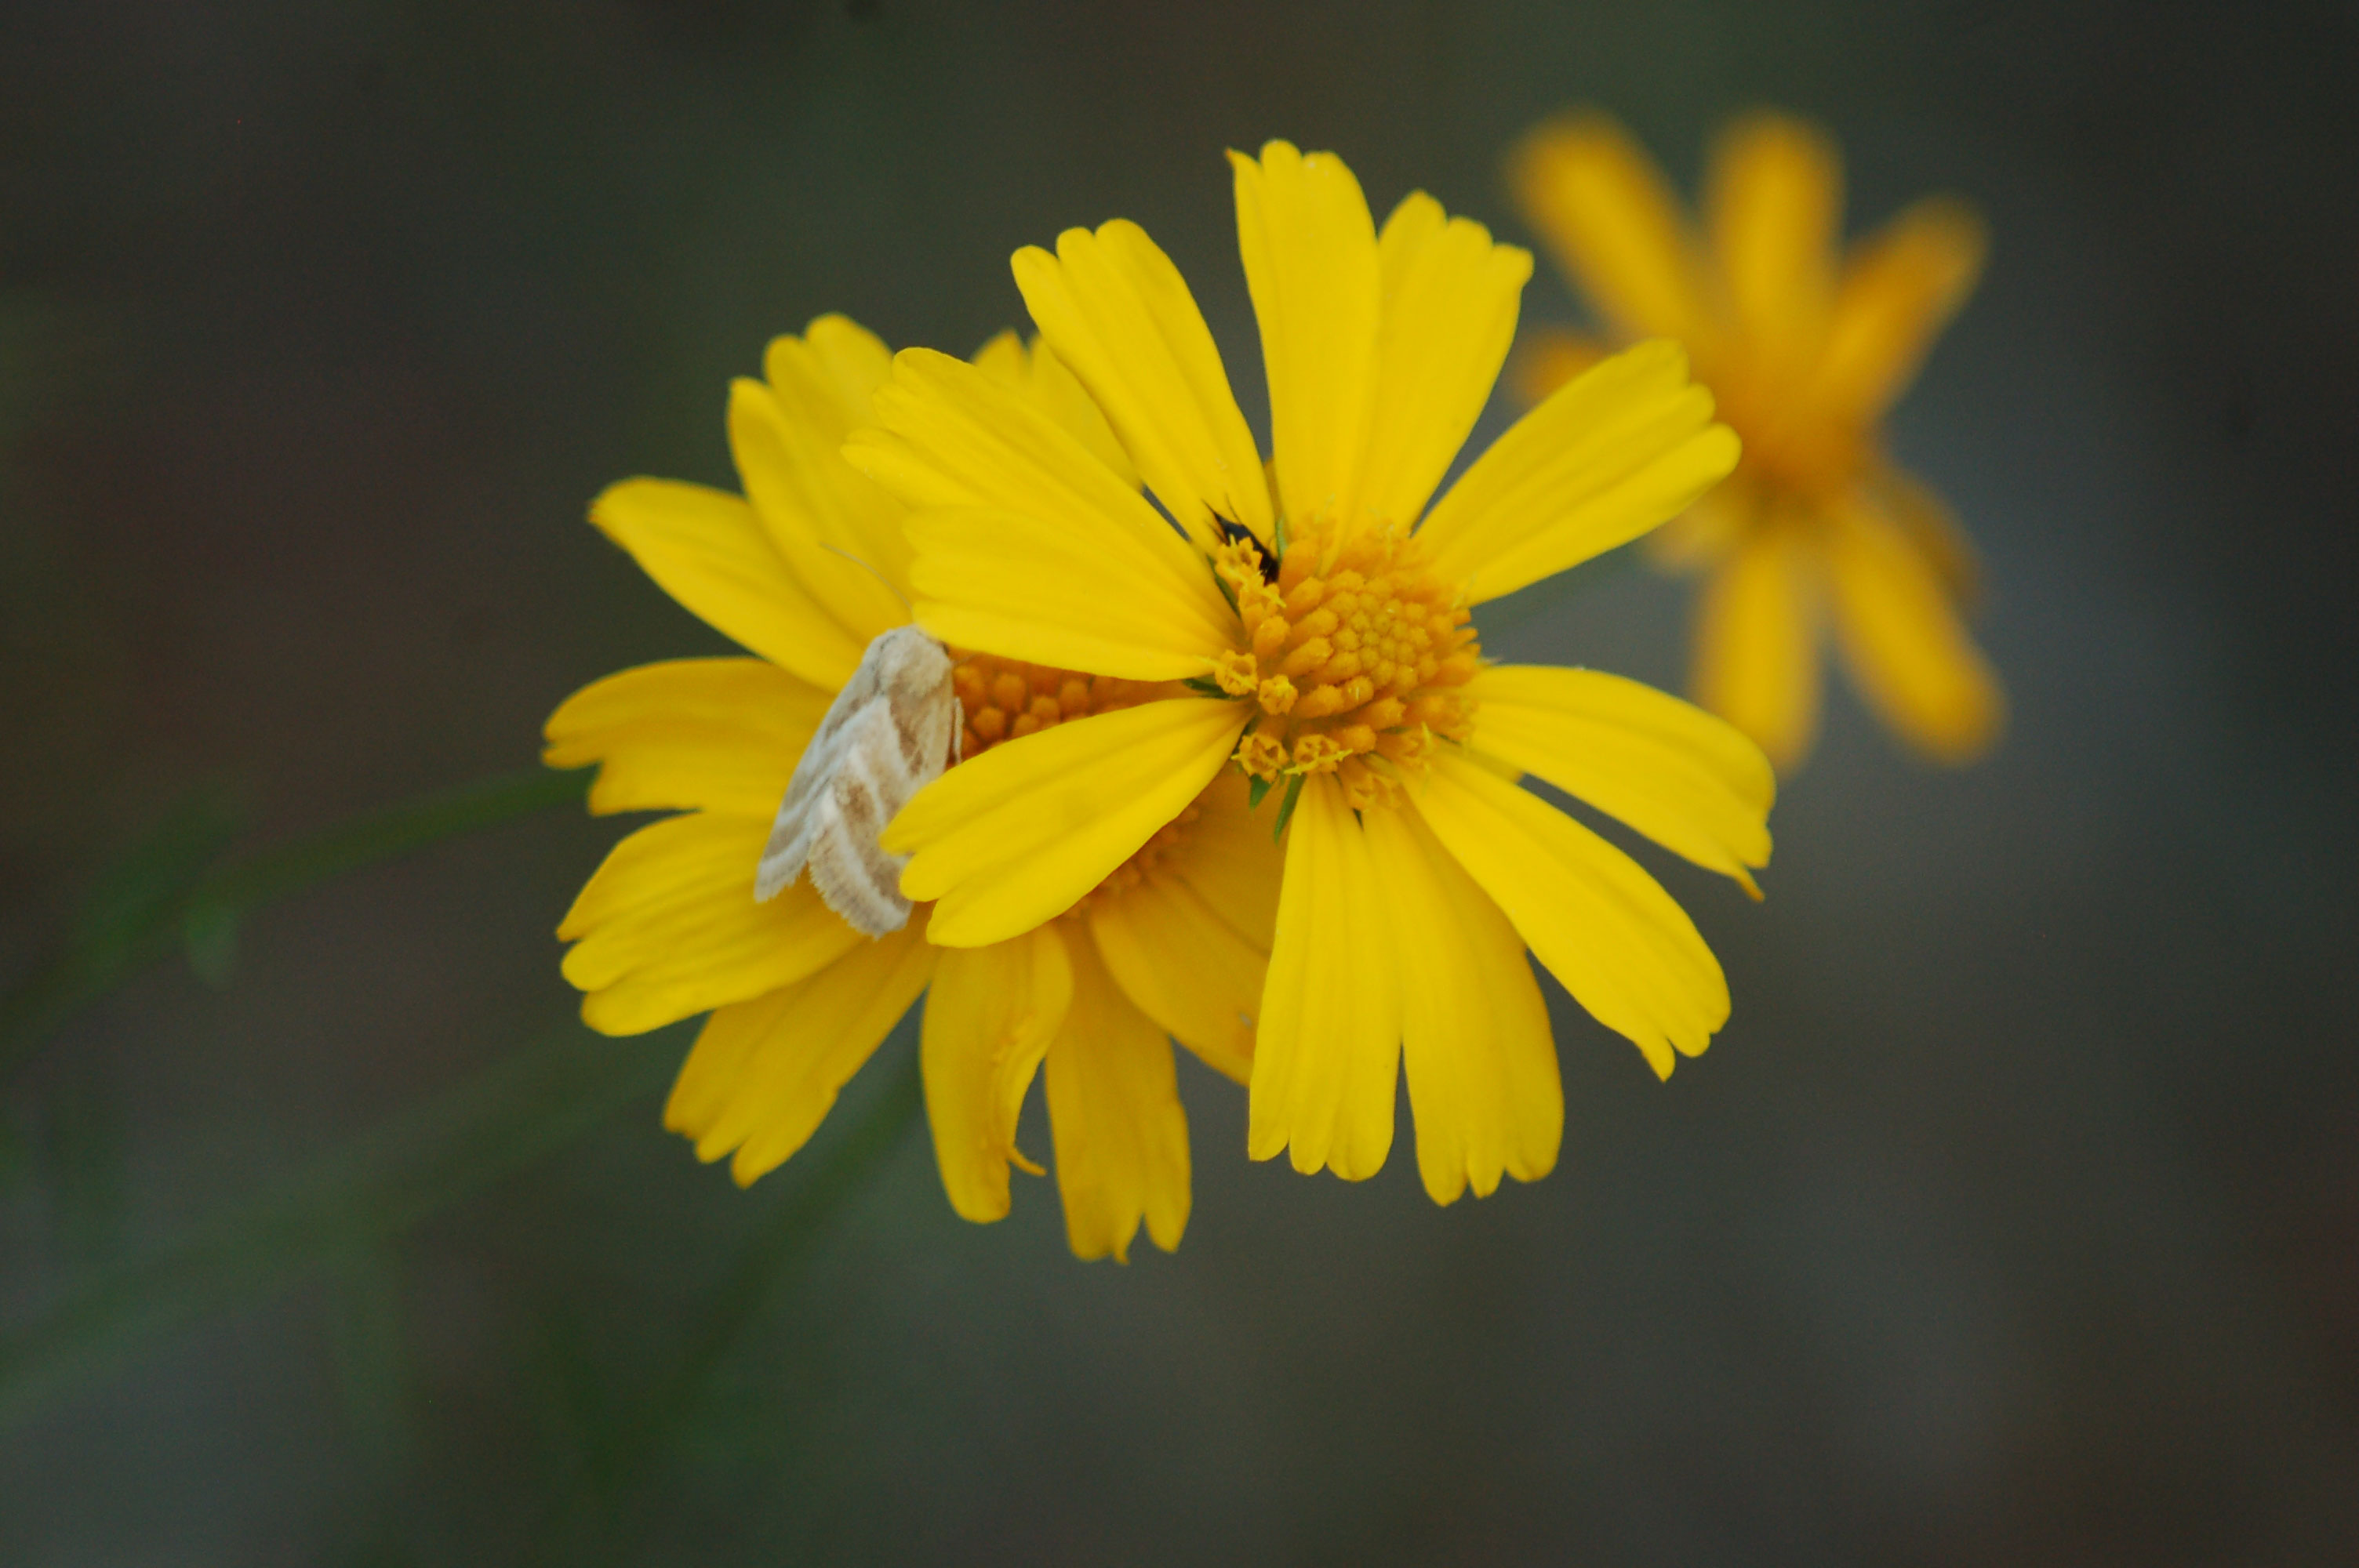 moth-on-yellow-wildflower-stock-photos-nature-flowers-linda-bateman